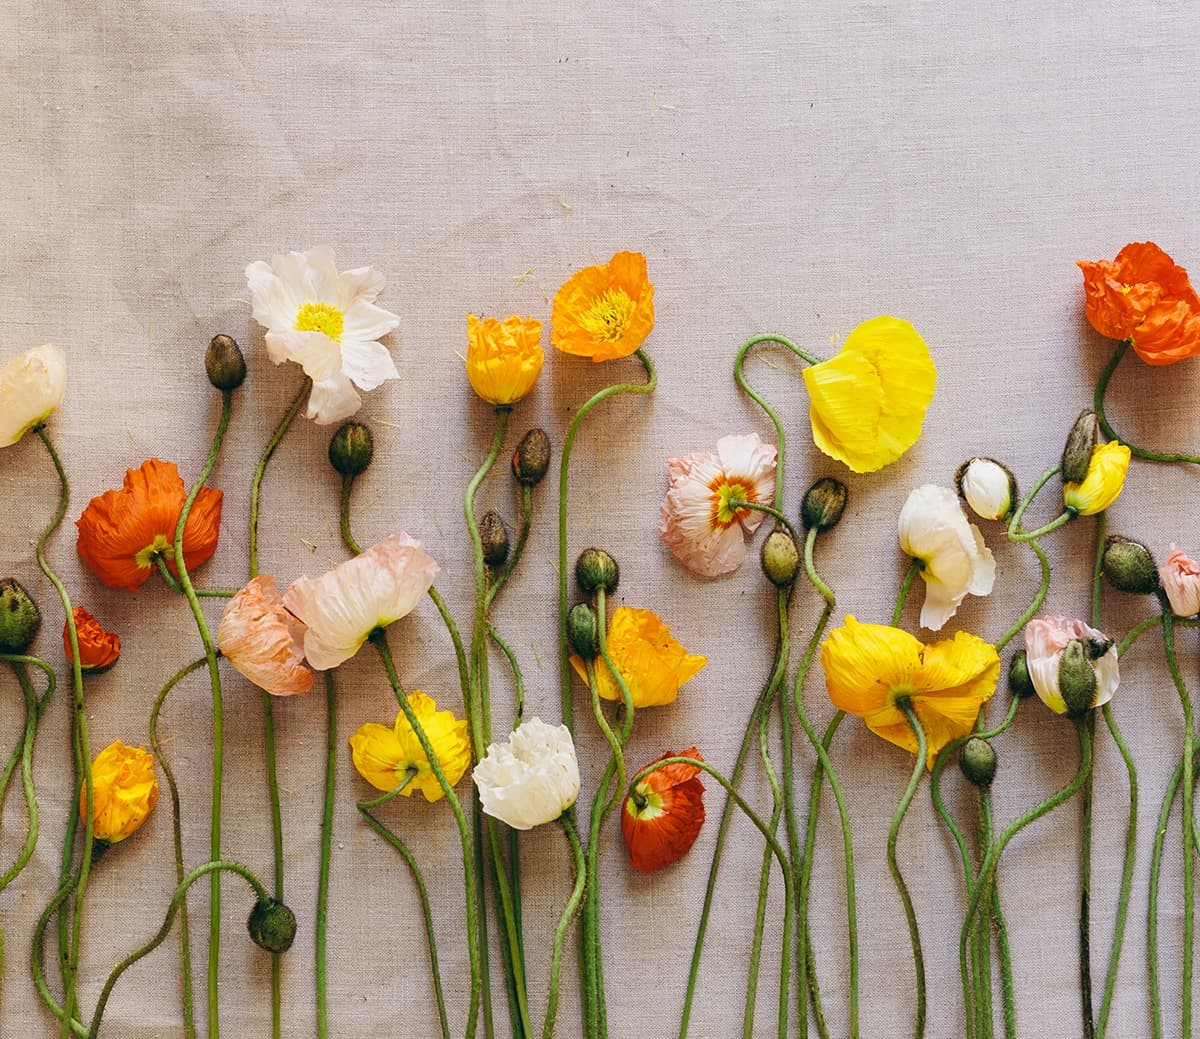 Poppies on a Linen Cloth